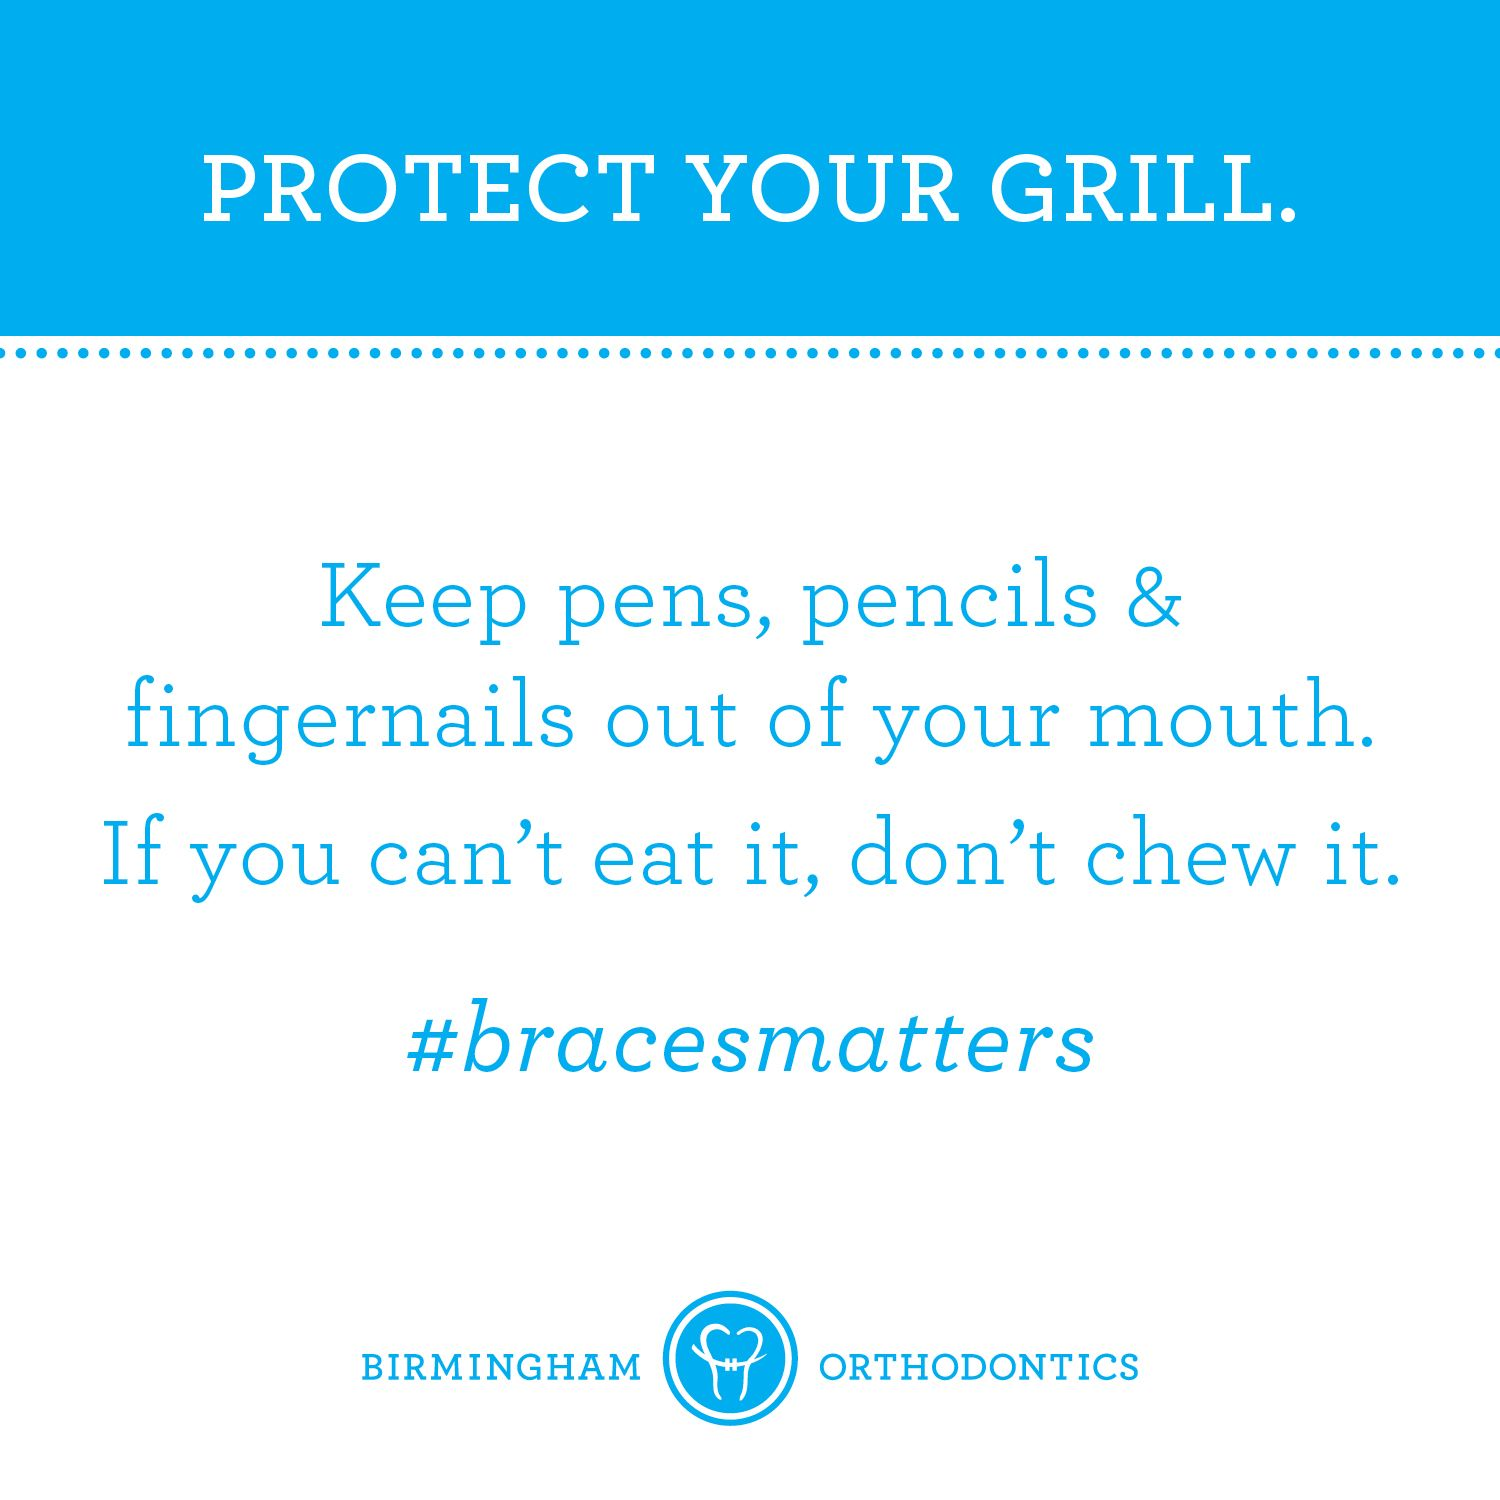 Braces tips. If you can't eat it, don't chew it